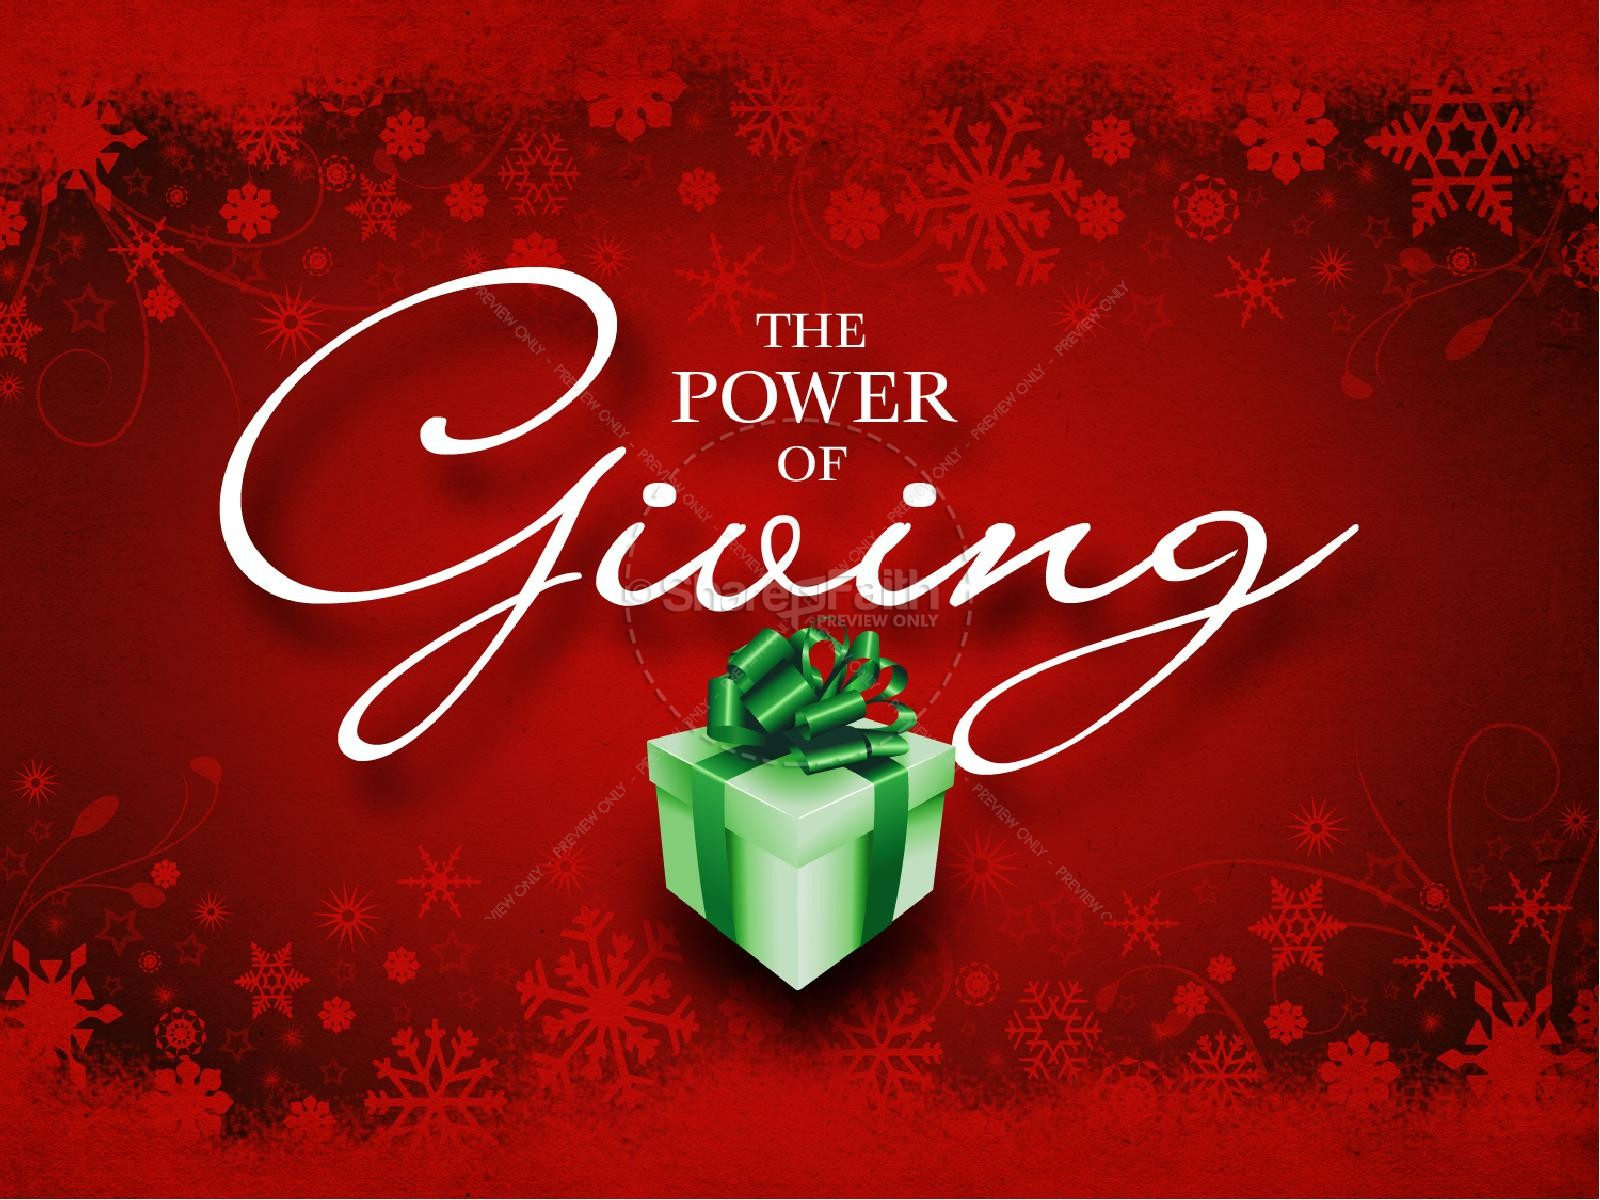 the power of giving powerpoint presentation | christmas powerpoints, Powerpoint templates